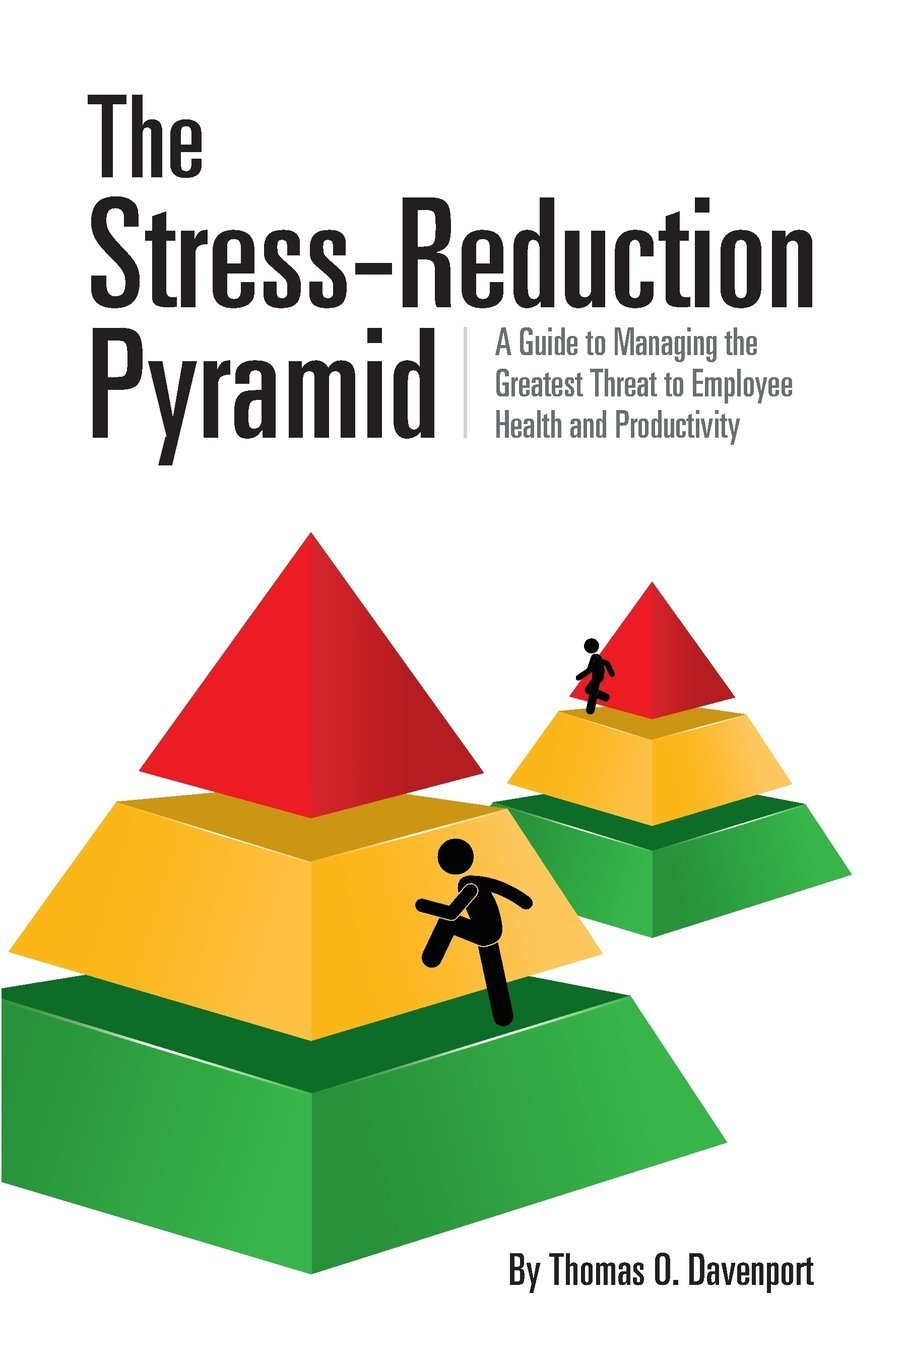 The Stress-Reduction Pyramid: A Guide to Managing the